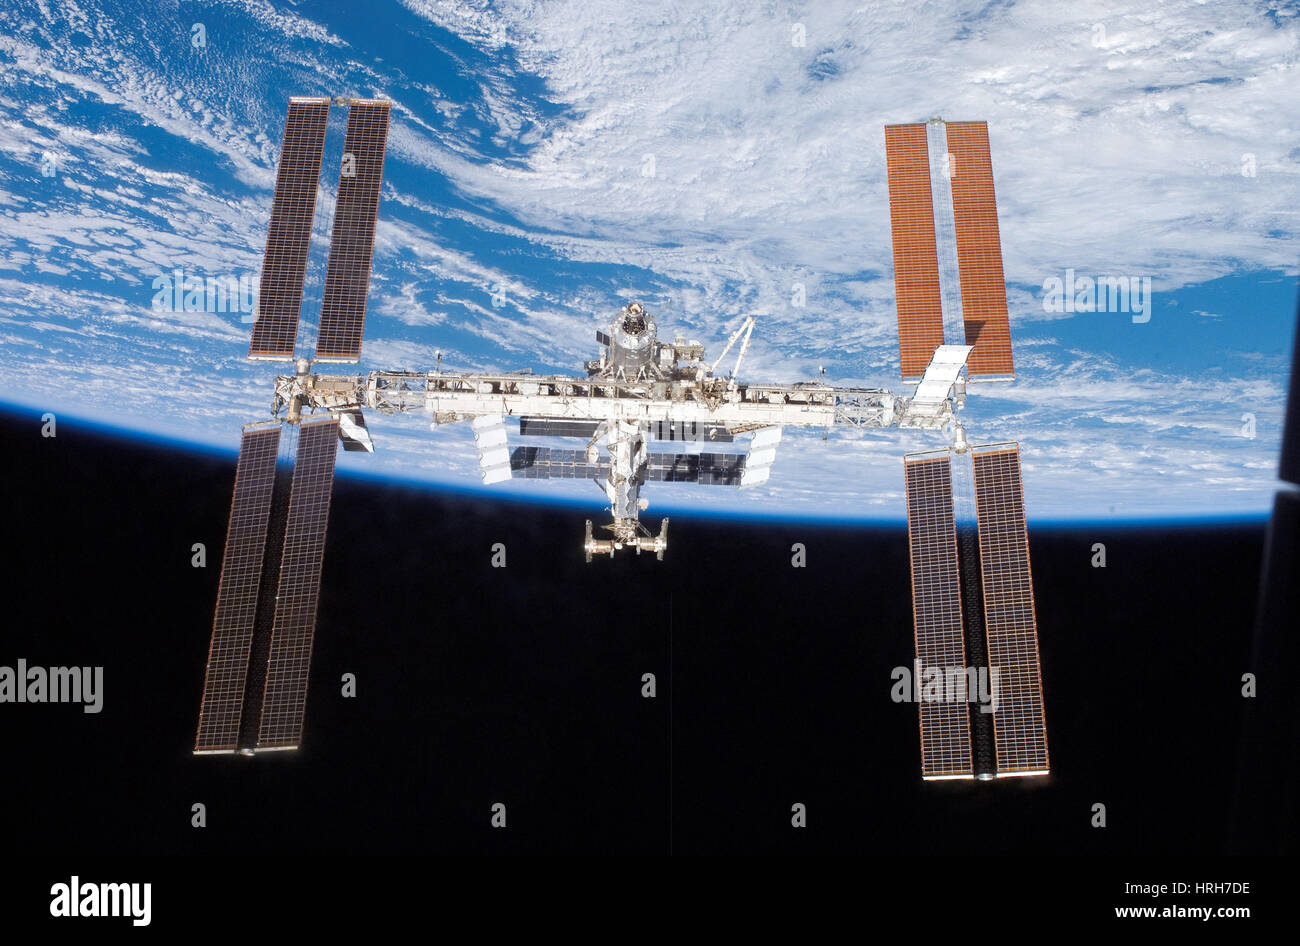 STS-117, International Space Station, 2007 - Stock Image